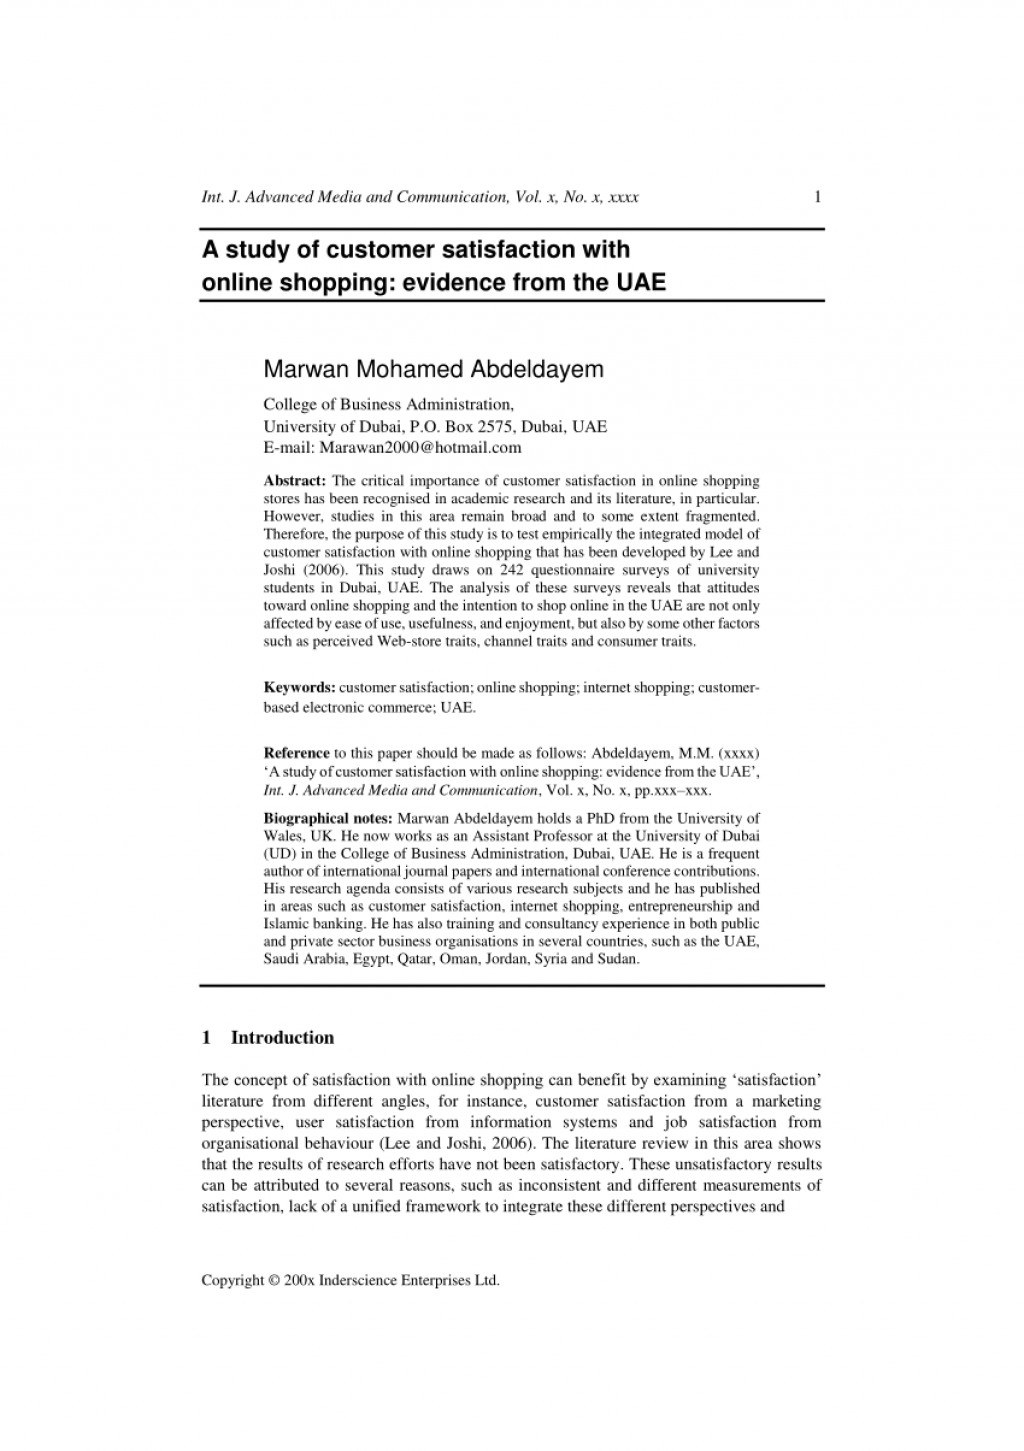 001 Online Shopping Research Paper Philippines Striking Large